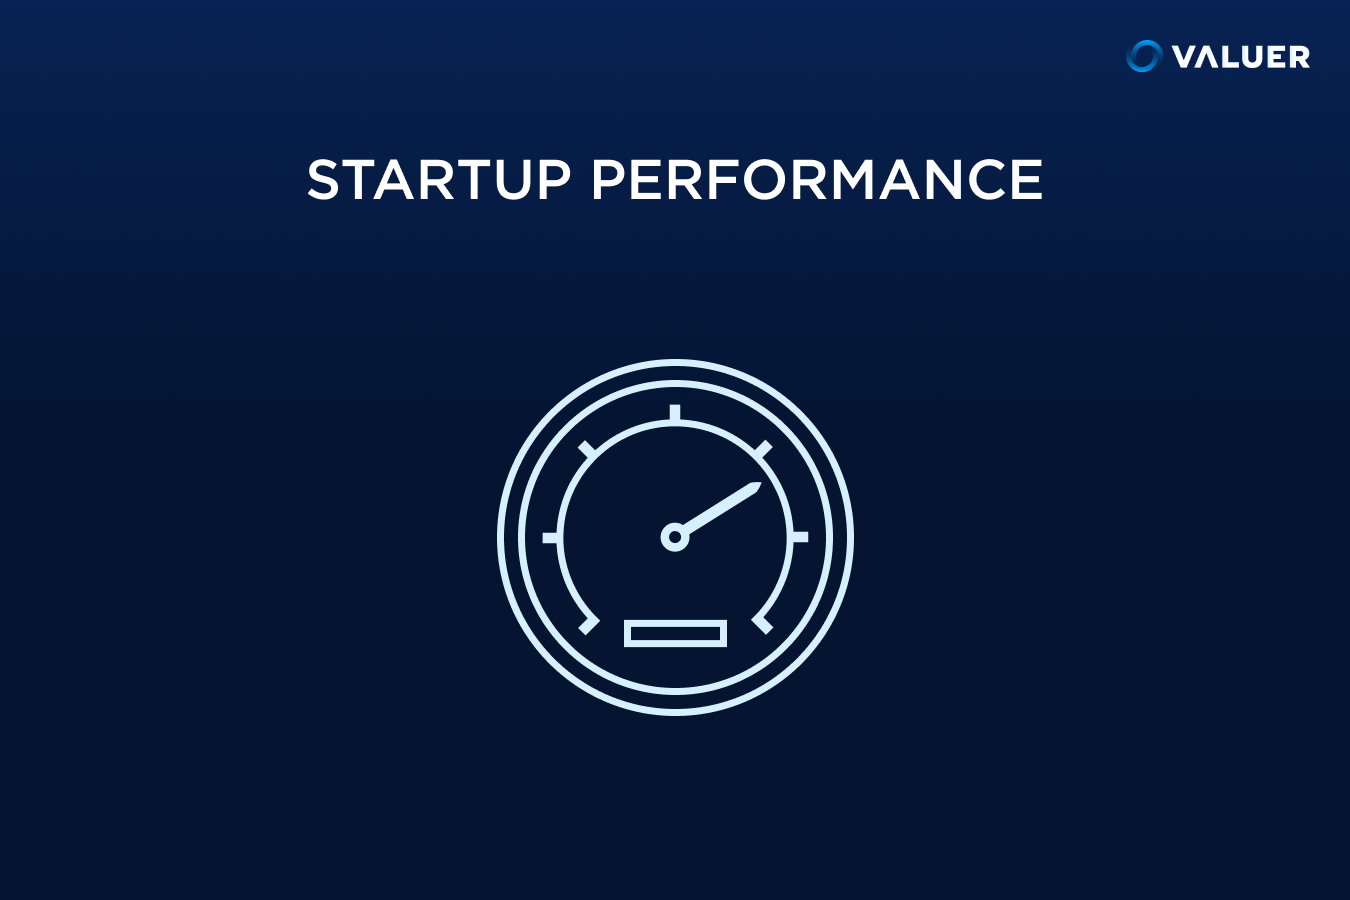 Start up Performance with an image of a speedometer